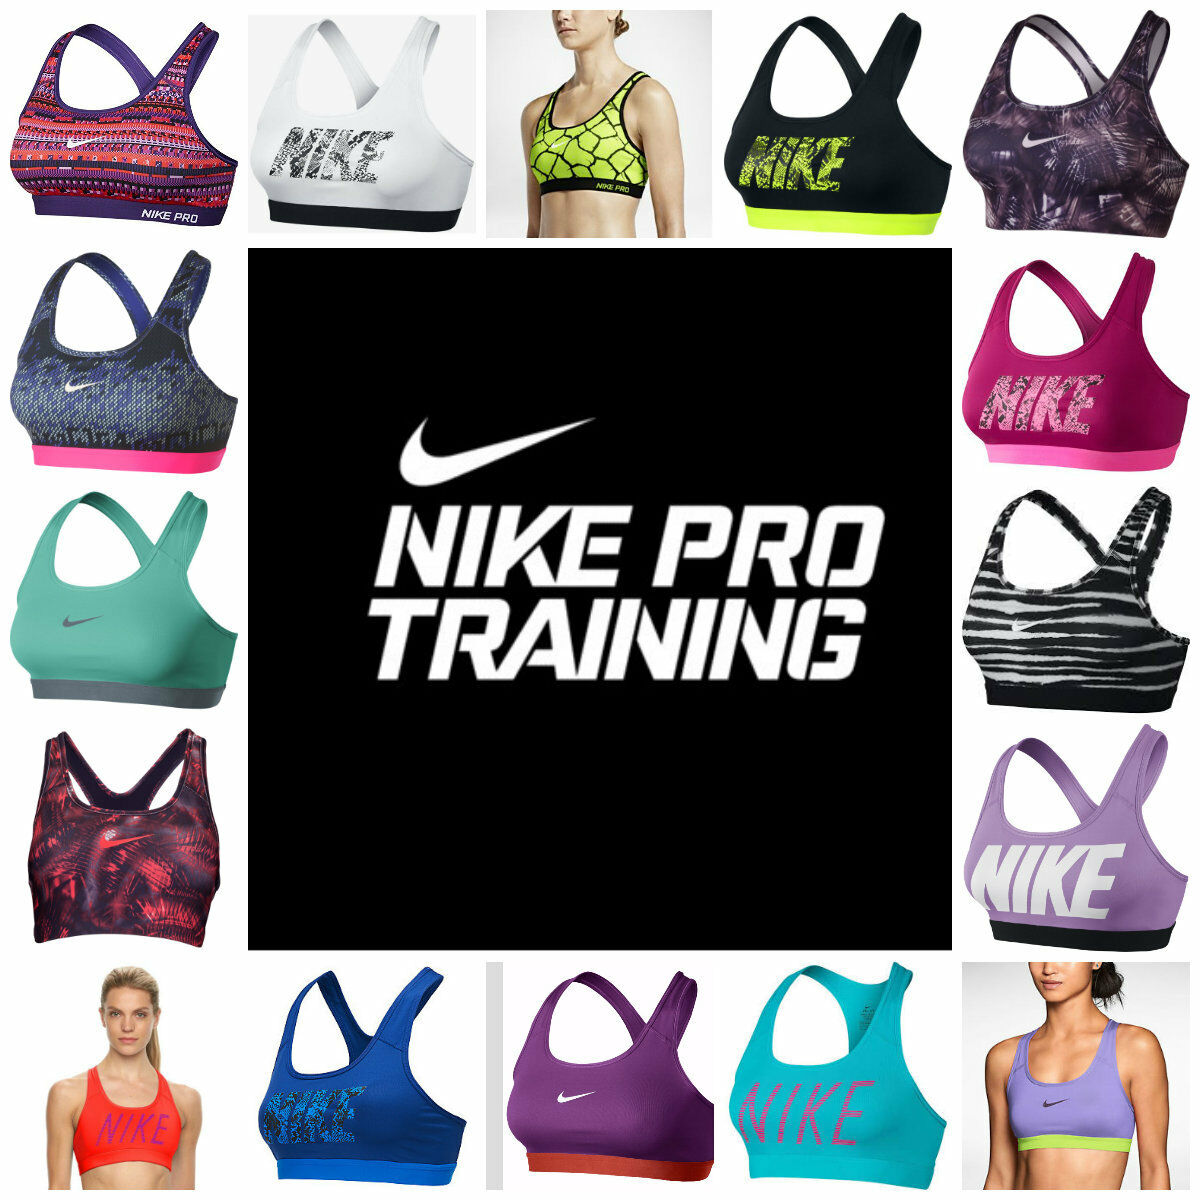 NIKE PRO Womens Sports Bras Asst colors Patterns XS-XL Med Support NWT Free Ship